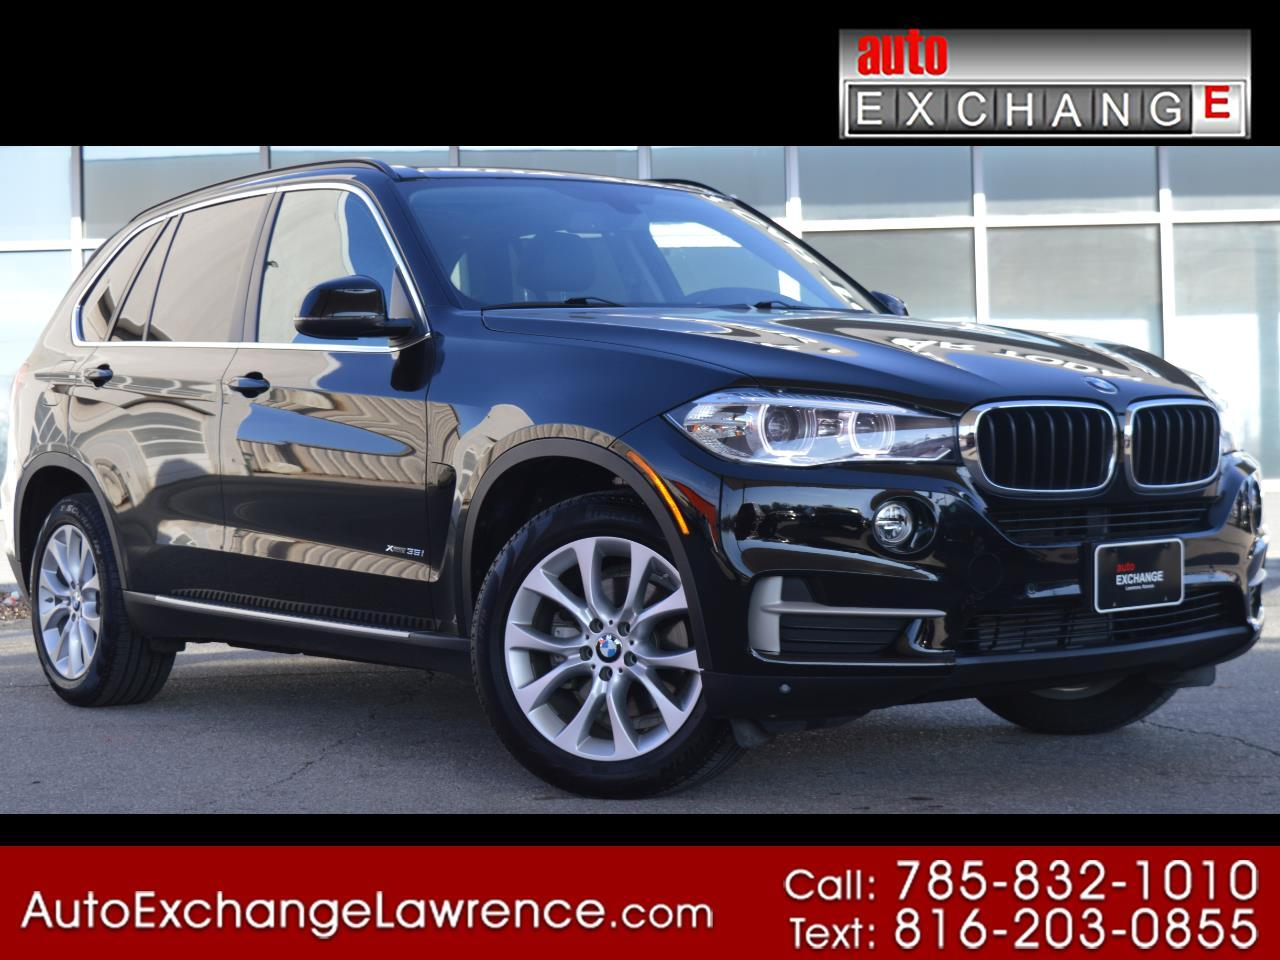 Used 2016 Bmw X5 Xdrive35i For Sale In Lawrence Ks 66046